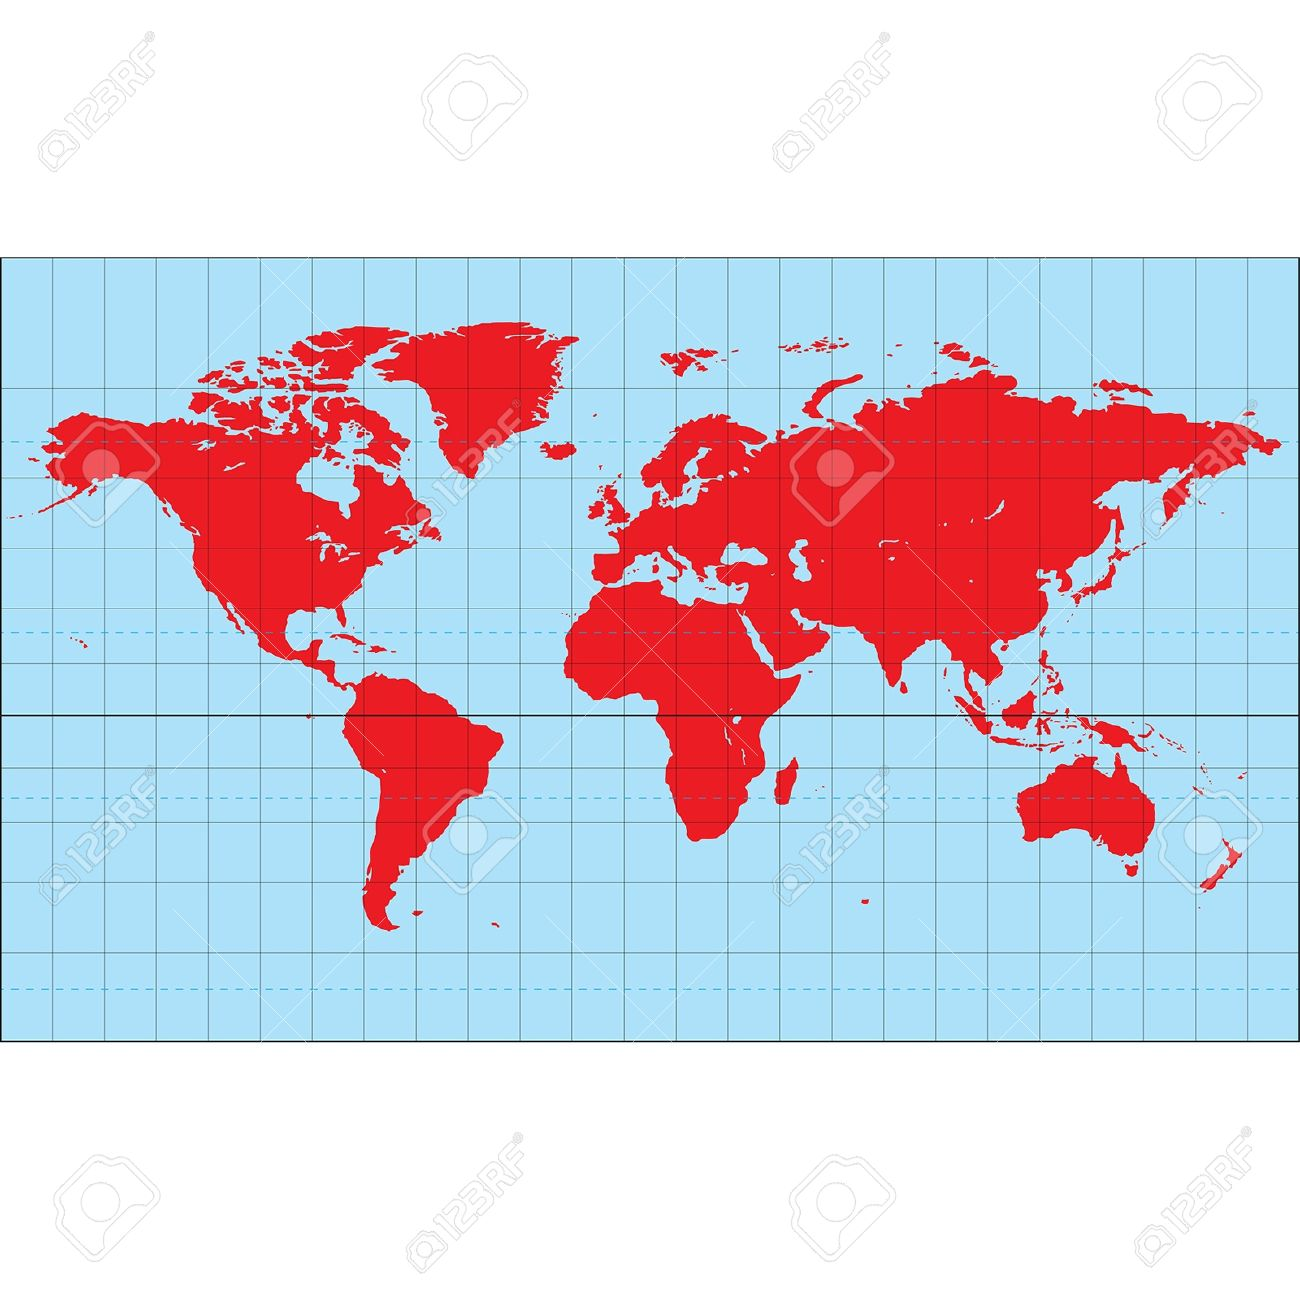 A World Map Based On The Miller Cylindrical Projection Royalty.